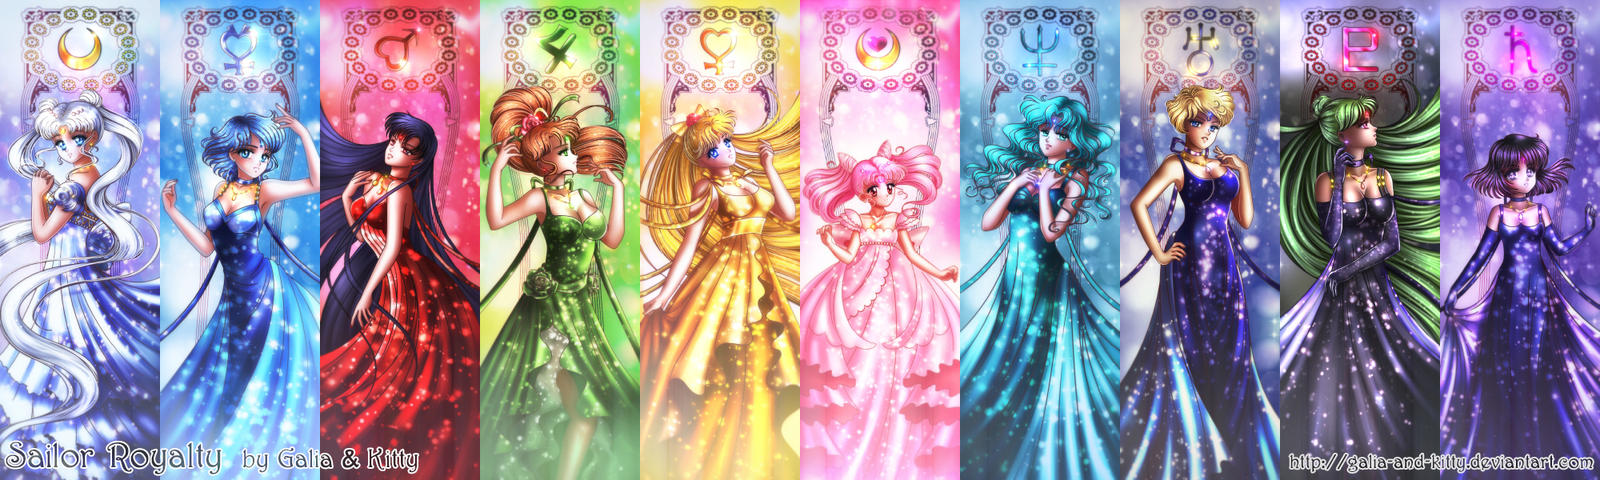 Sailor Royalty (Full Size download available)